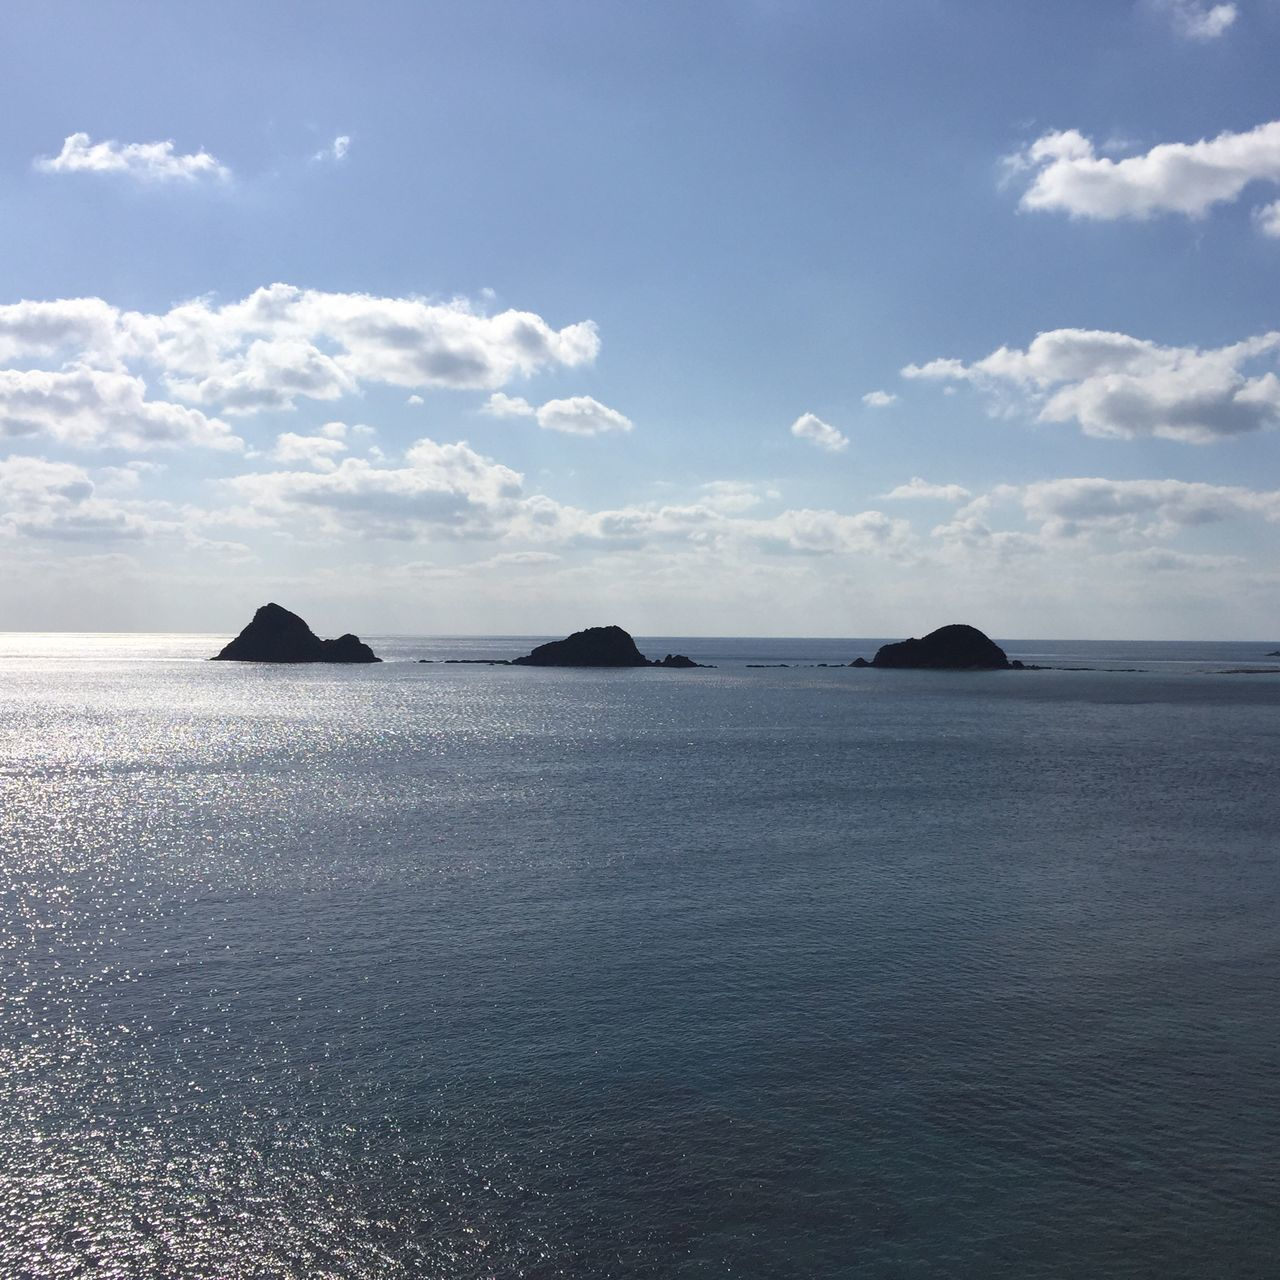 Sea Sky Beauty In Nature Tranquil Scene Water Nature Scenics Tranquility Idyllic Horizon Over Water Cloud - Sky No People Day Outdoors Islands Smallisland Tinyisland Landscape Mountain Winter Sea Kagoshima Amami Island